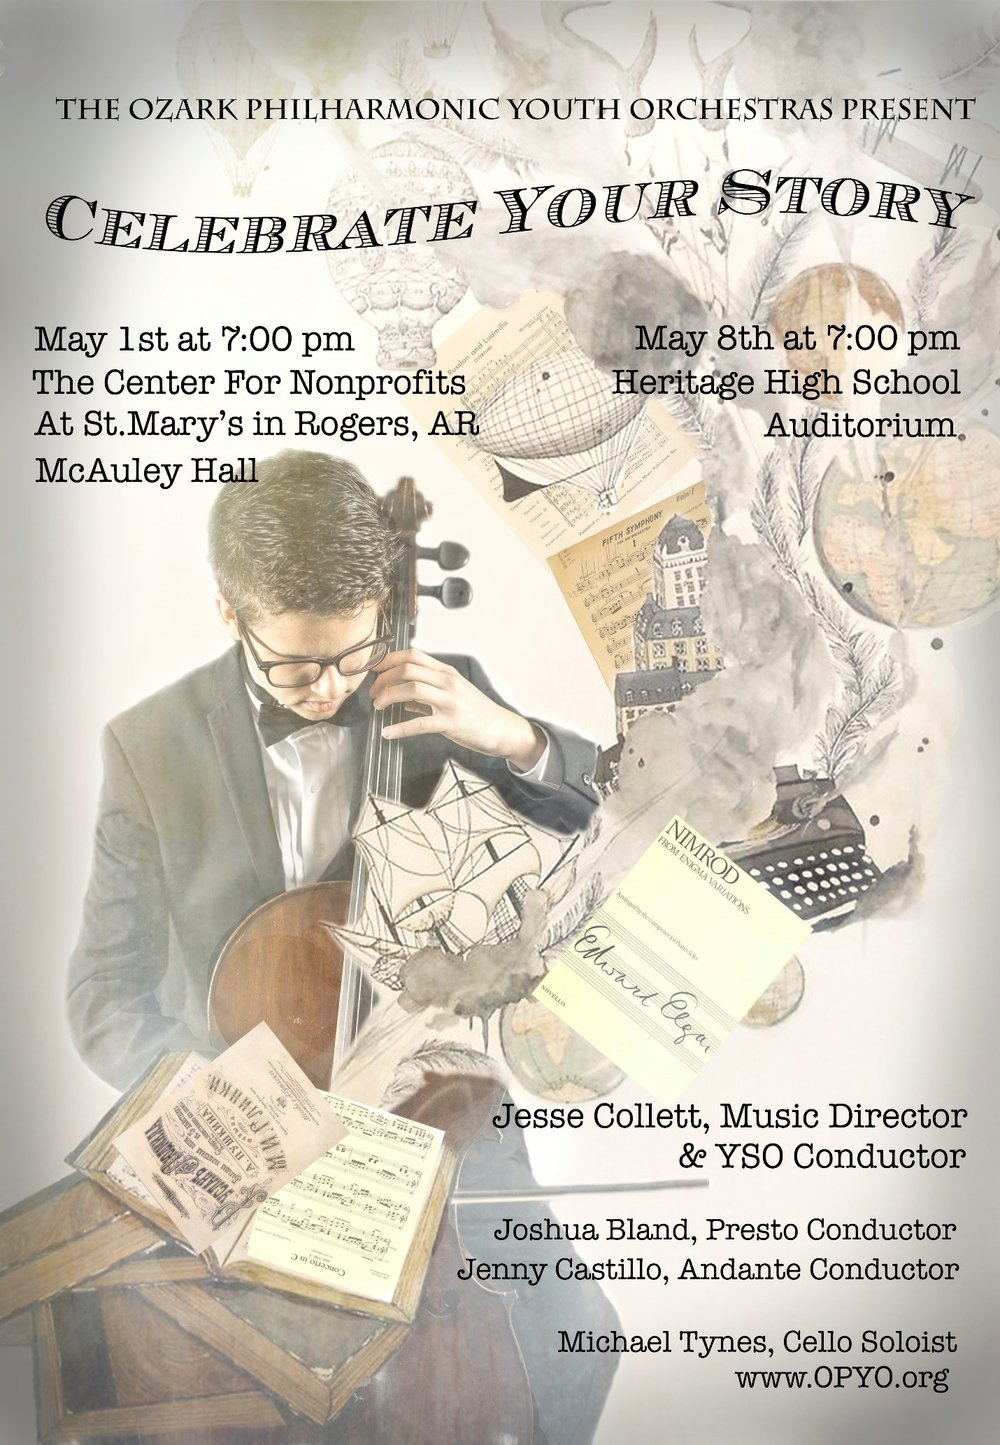 Ozark Philharmonic Youth Orchestra, Center for Nonprofits at St. Mary's, CFN, Rogers, Arkansas, OPYO,